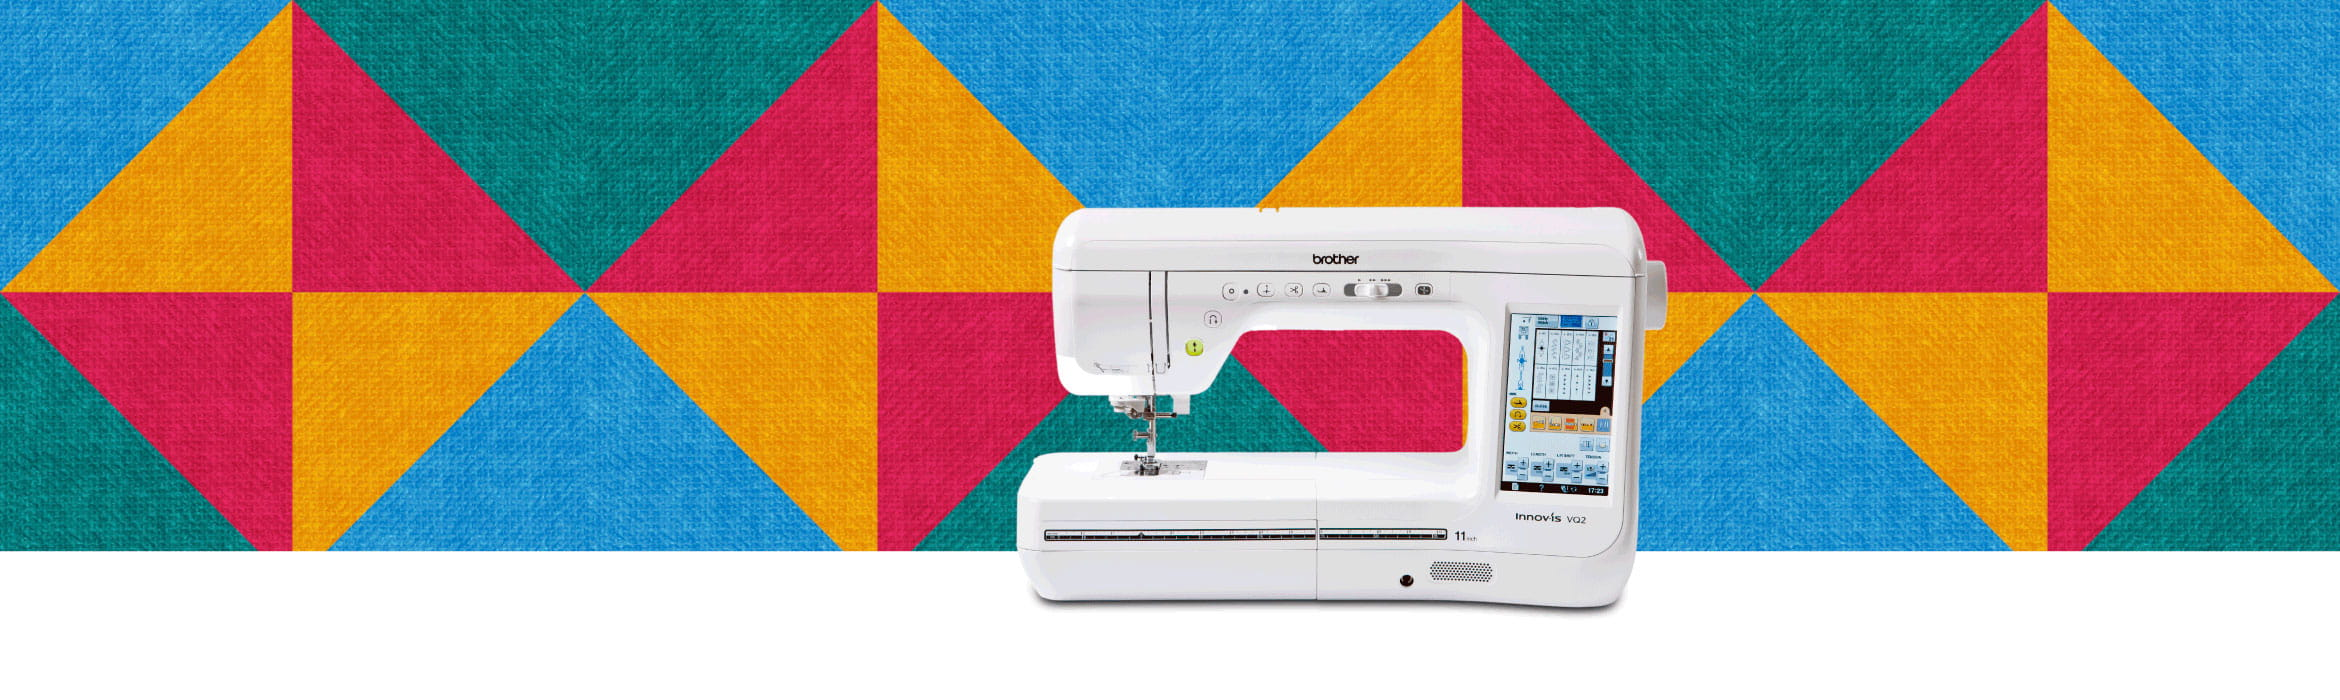 quilting machine on a multicoloured pattern background